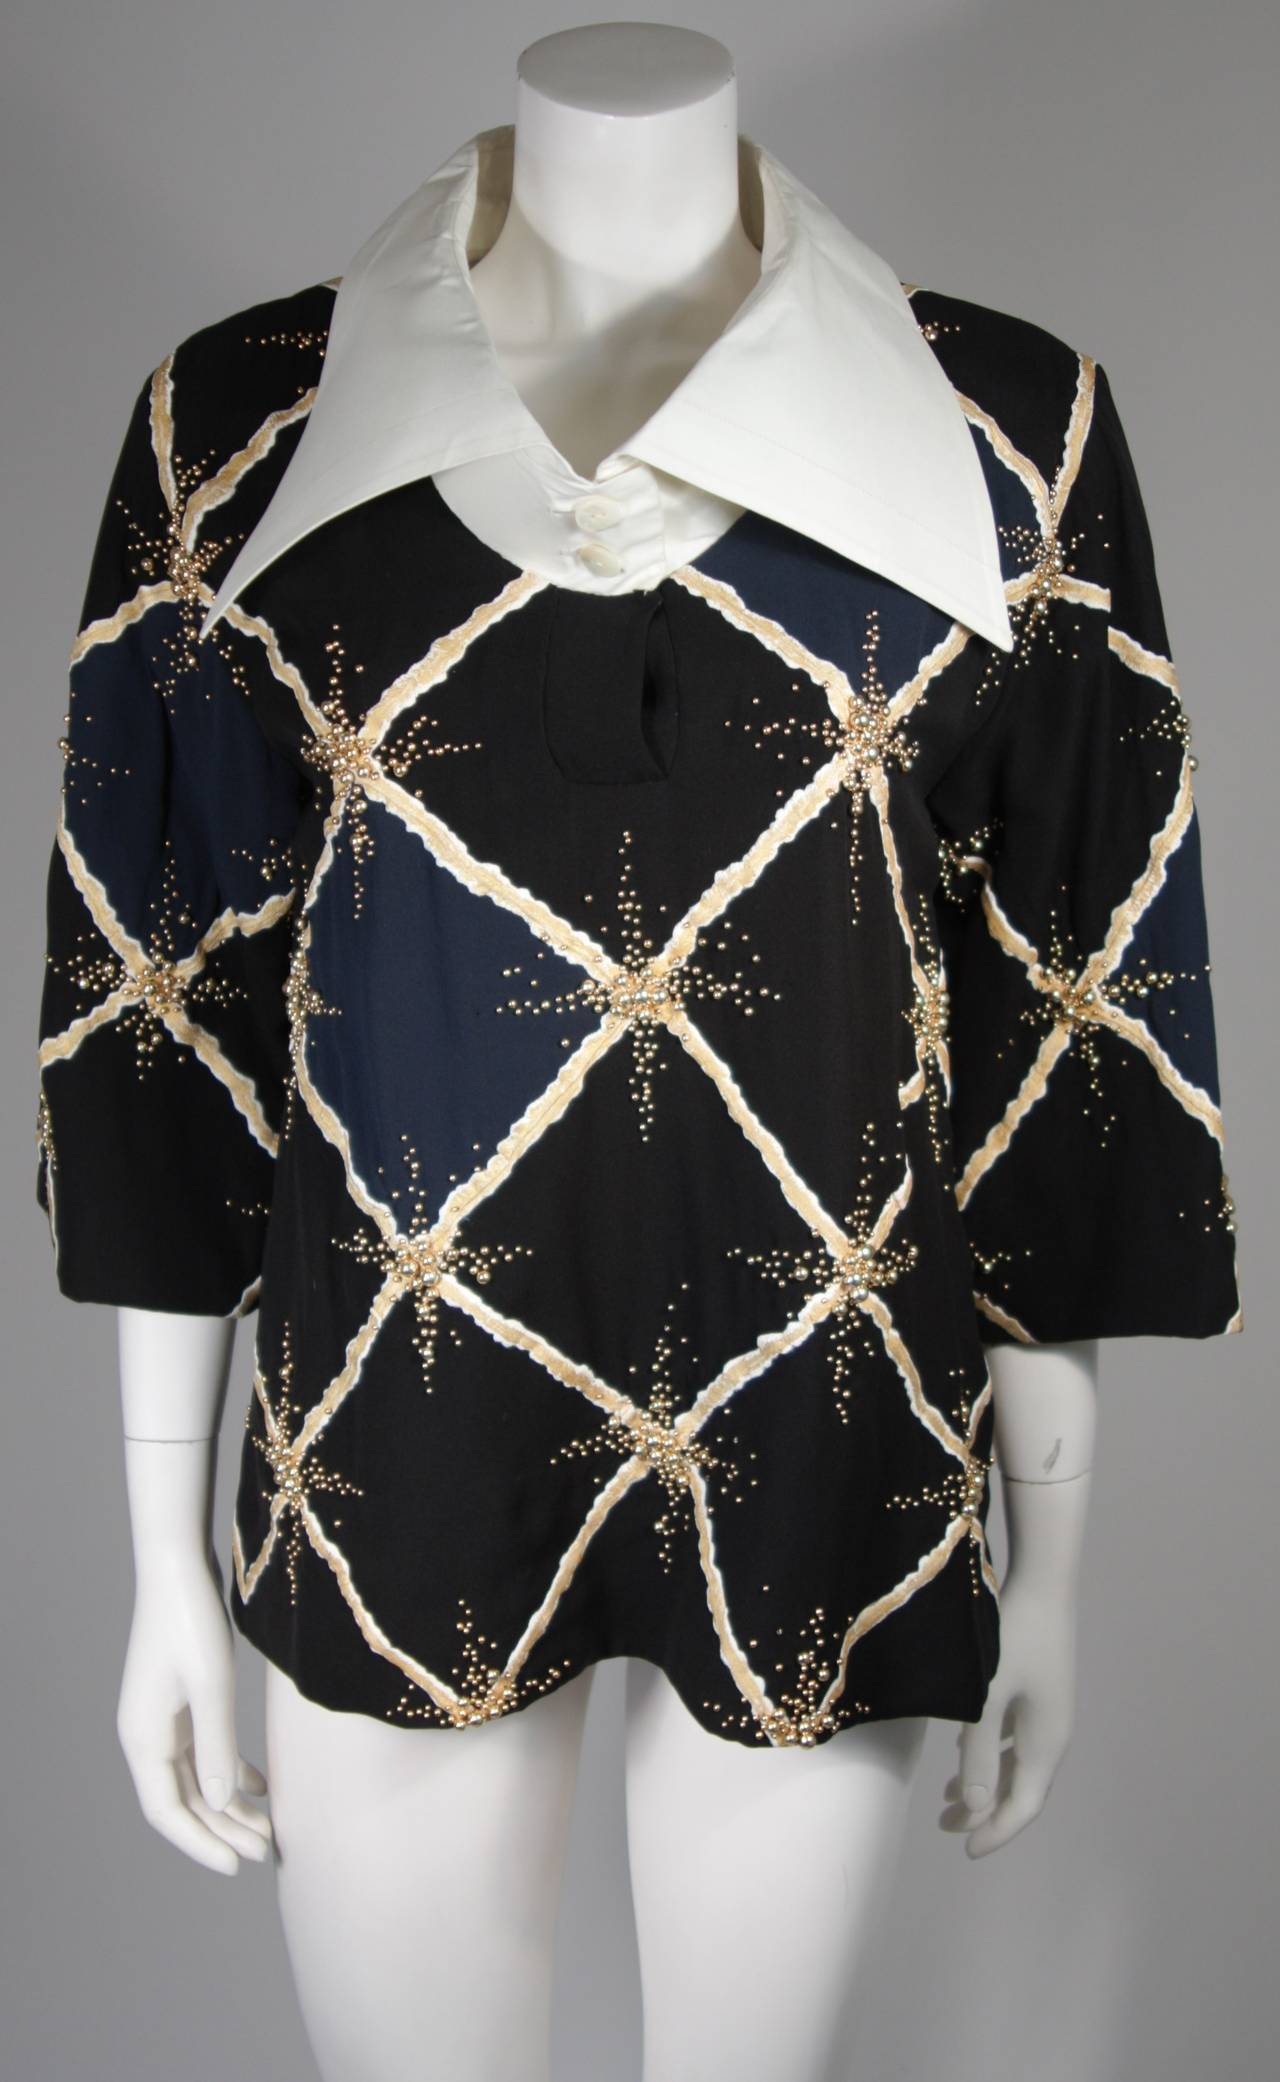 Pierre Balmain Couture Embellished Blouse with Exaggerated Collar  Size Small 2